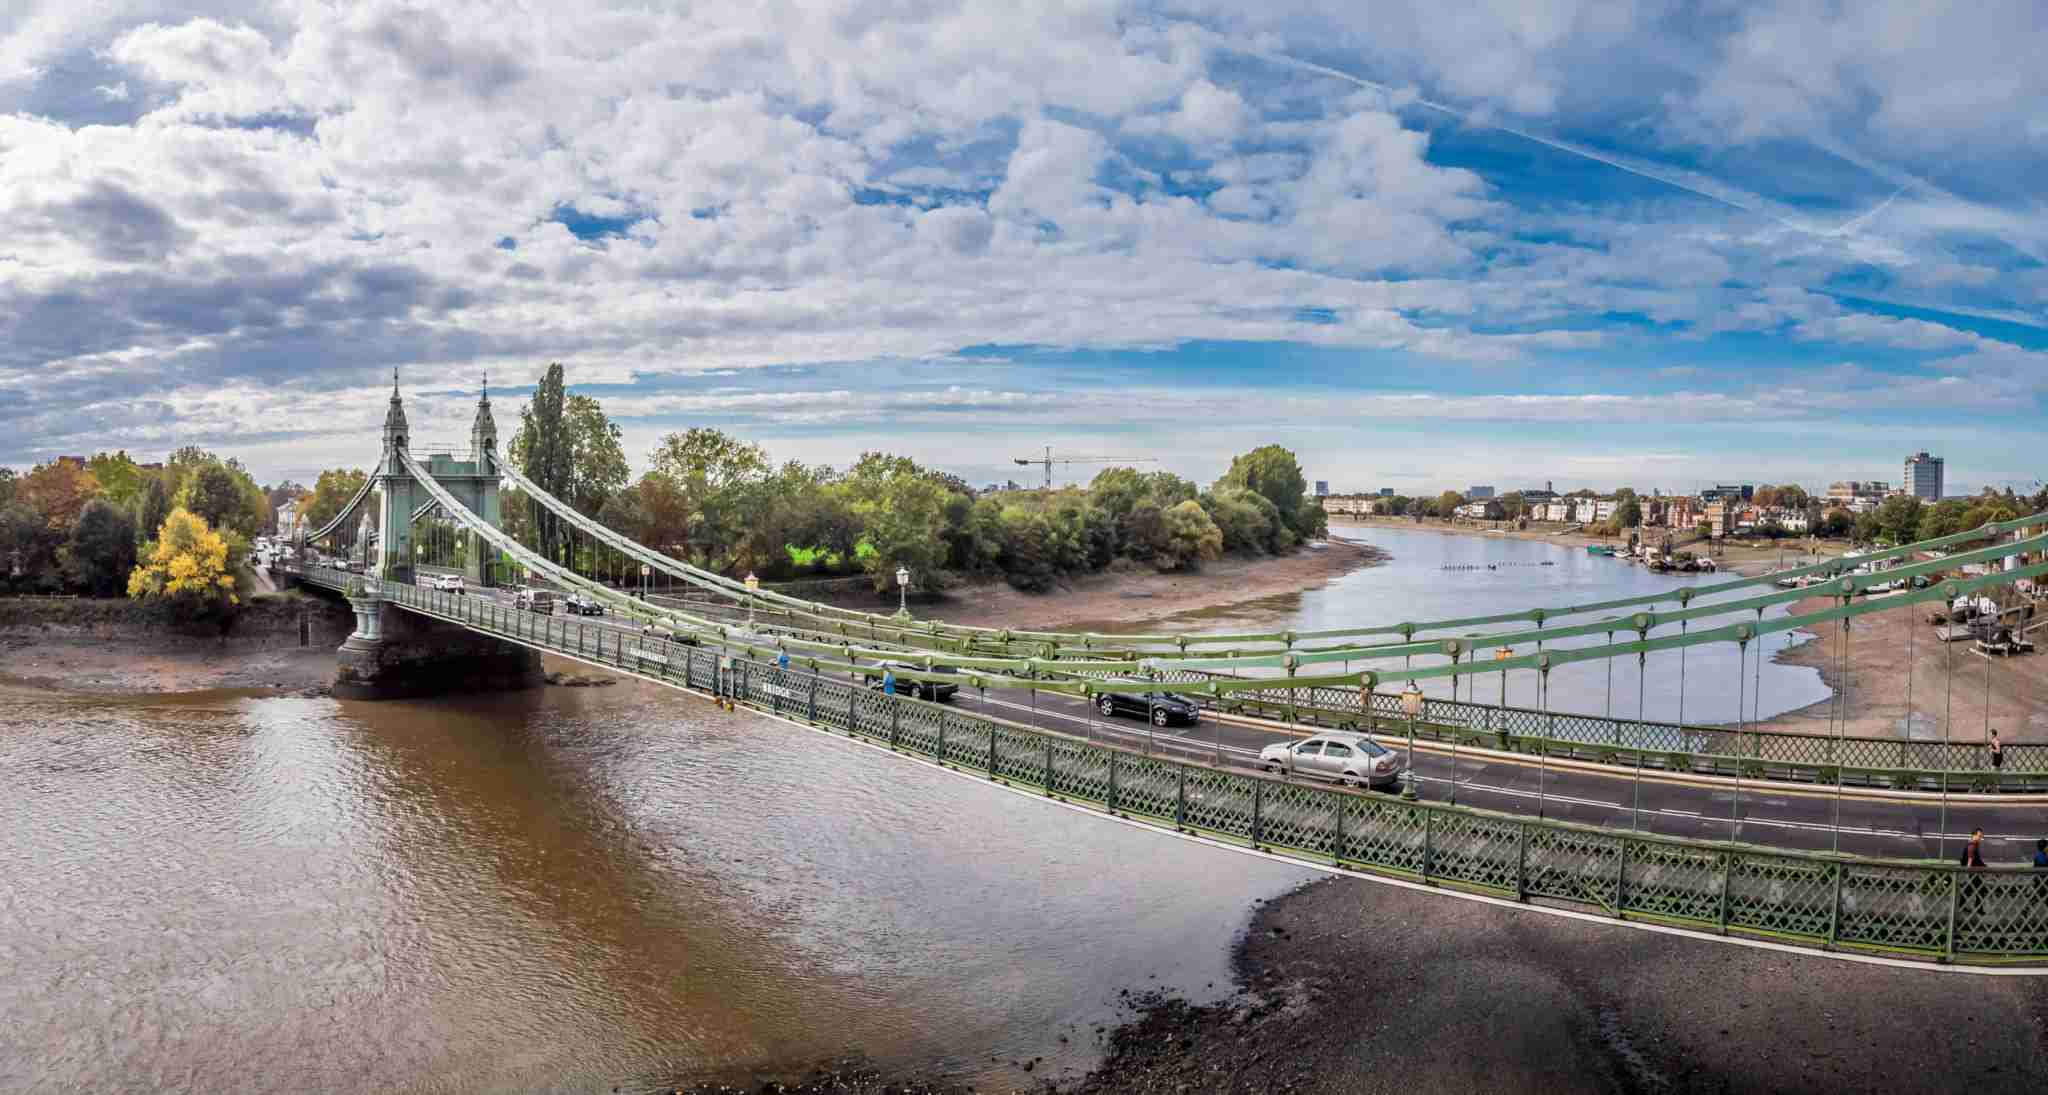 Hammersmith bridge at low tide, London, UK. Photo by Alexey_Fedoren / Getty Images